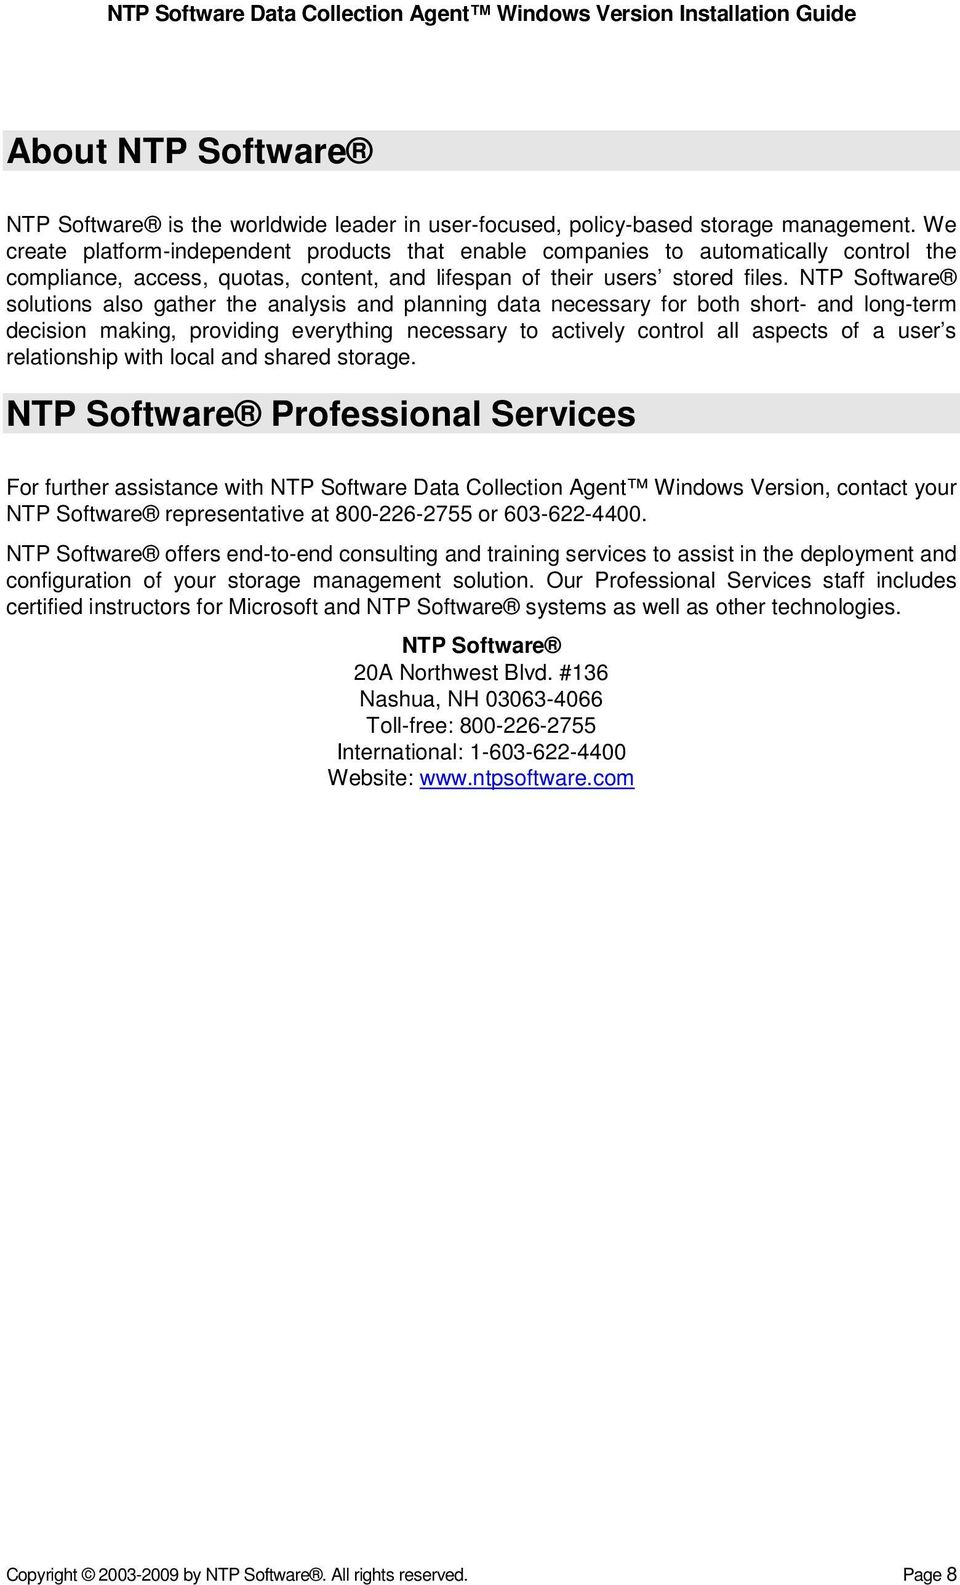 NTP Software solutions also gather the analysis and planning data necessary for both short- and long-term decision making, providing everything necessary to actively control all aspects of a user s